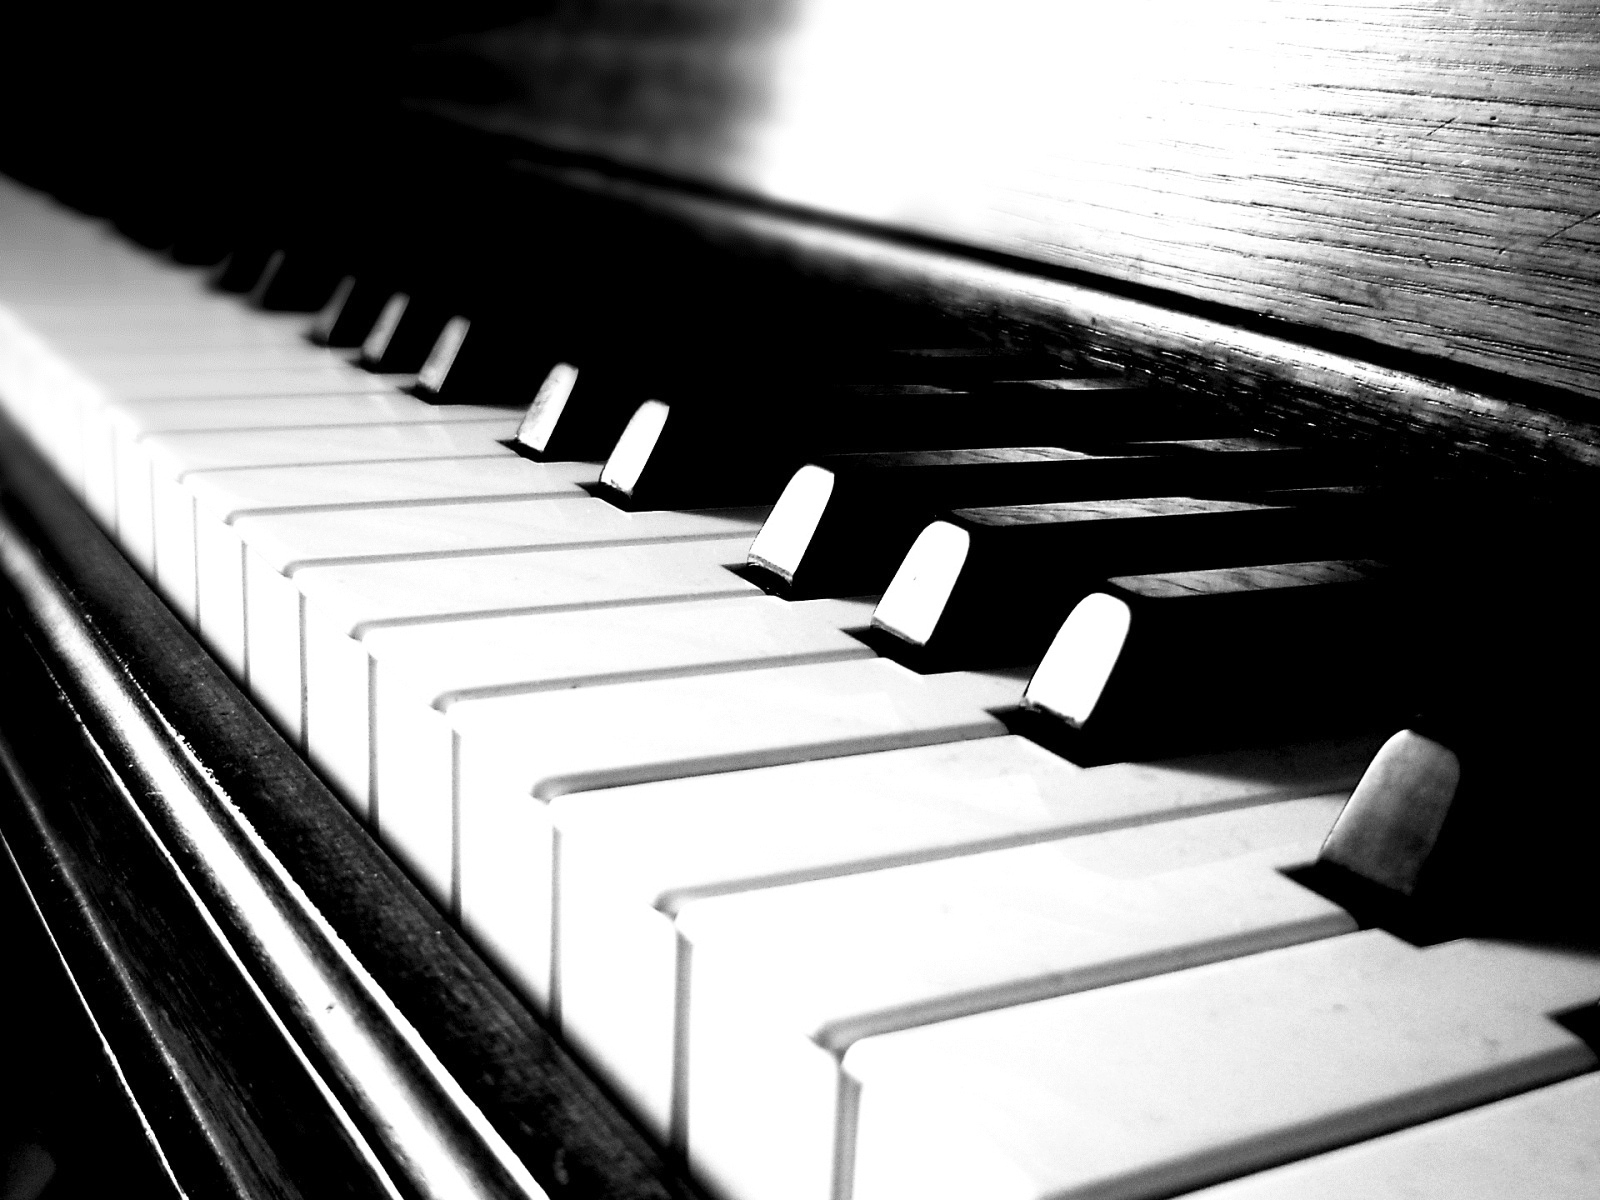 http://4.bp.blogspot.com/-_eLrktuT1iI/UGhDXggp1-I/AAAAAAAAE8c/c-P2-5tUUxQ/s1600/Piano-Keyboard-Close-Up-Black-and-White-Psupero-HD-Wallpaper--Vvallpaper.Net.jpg